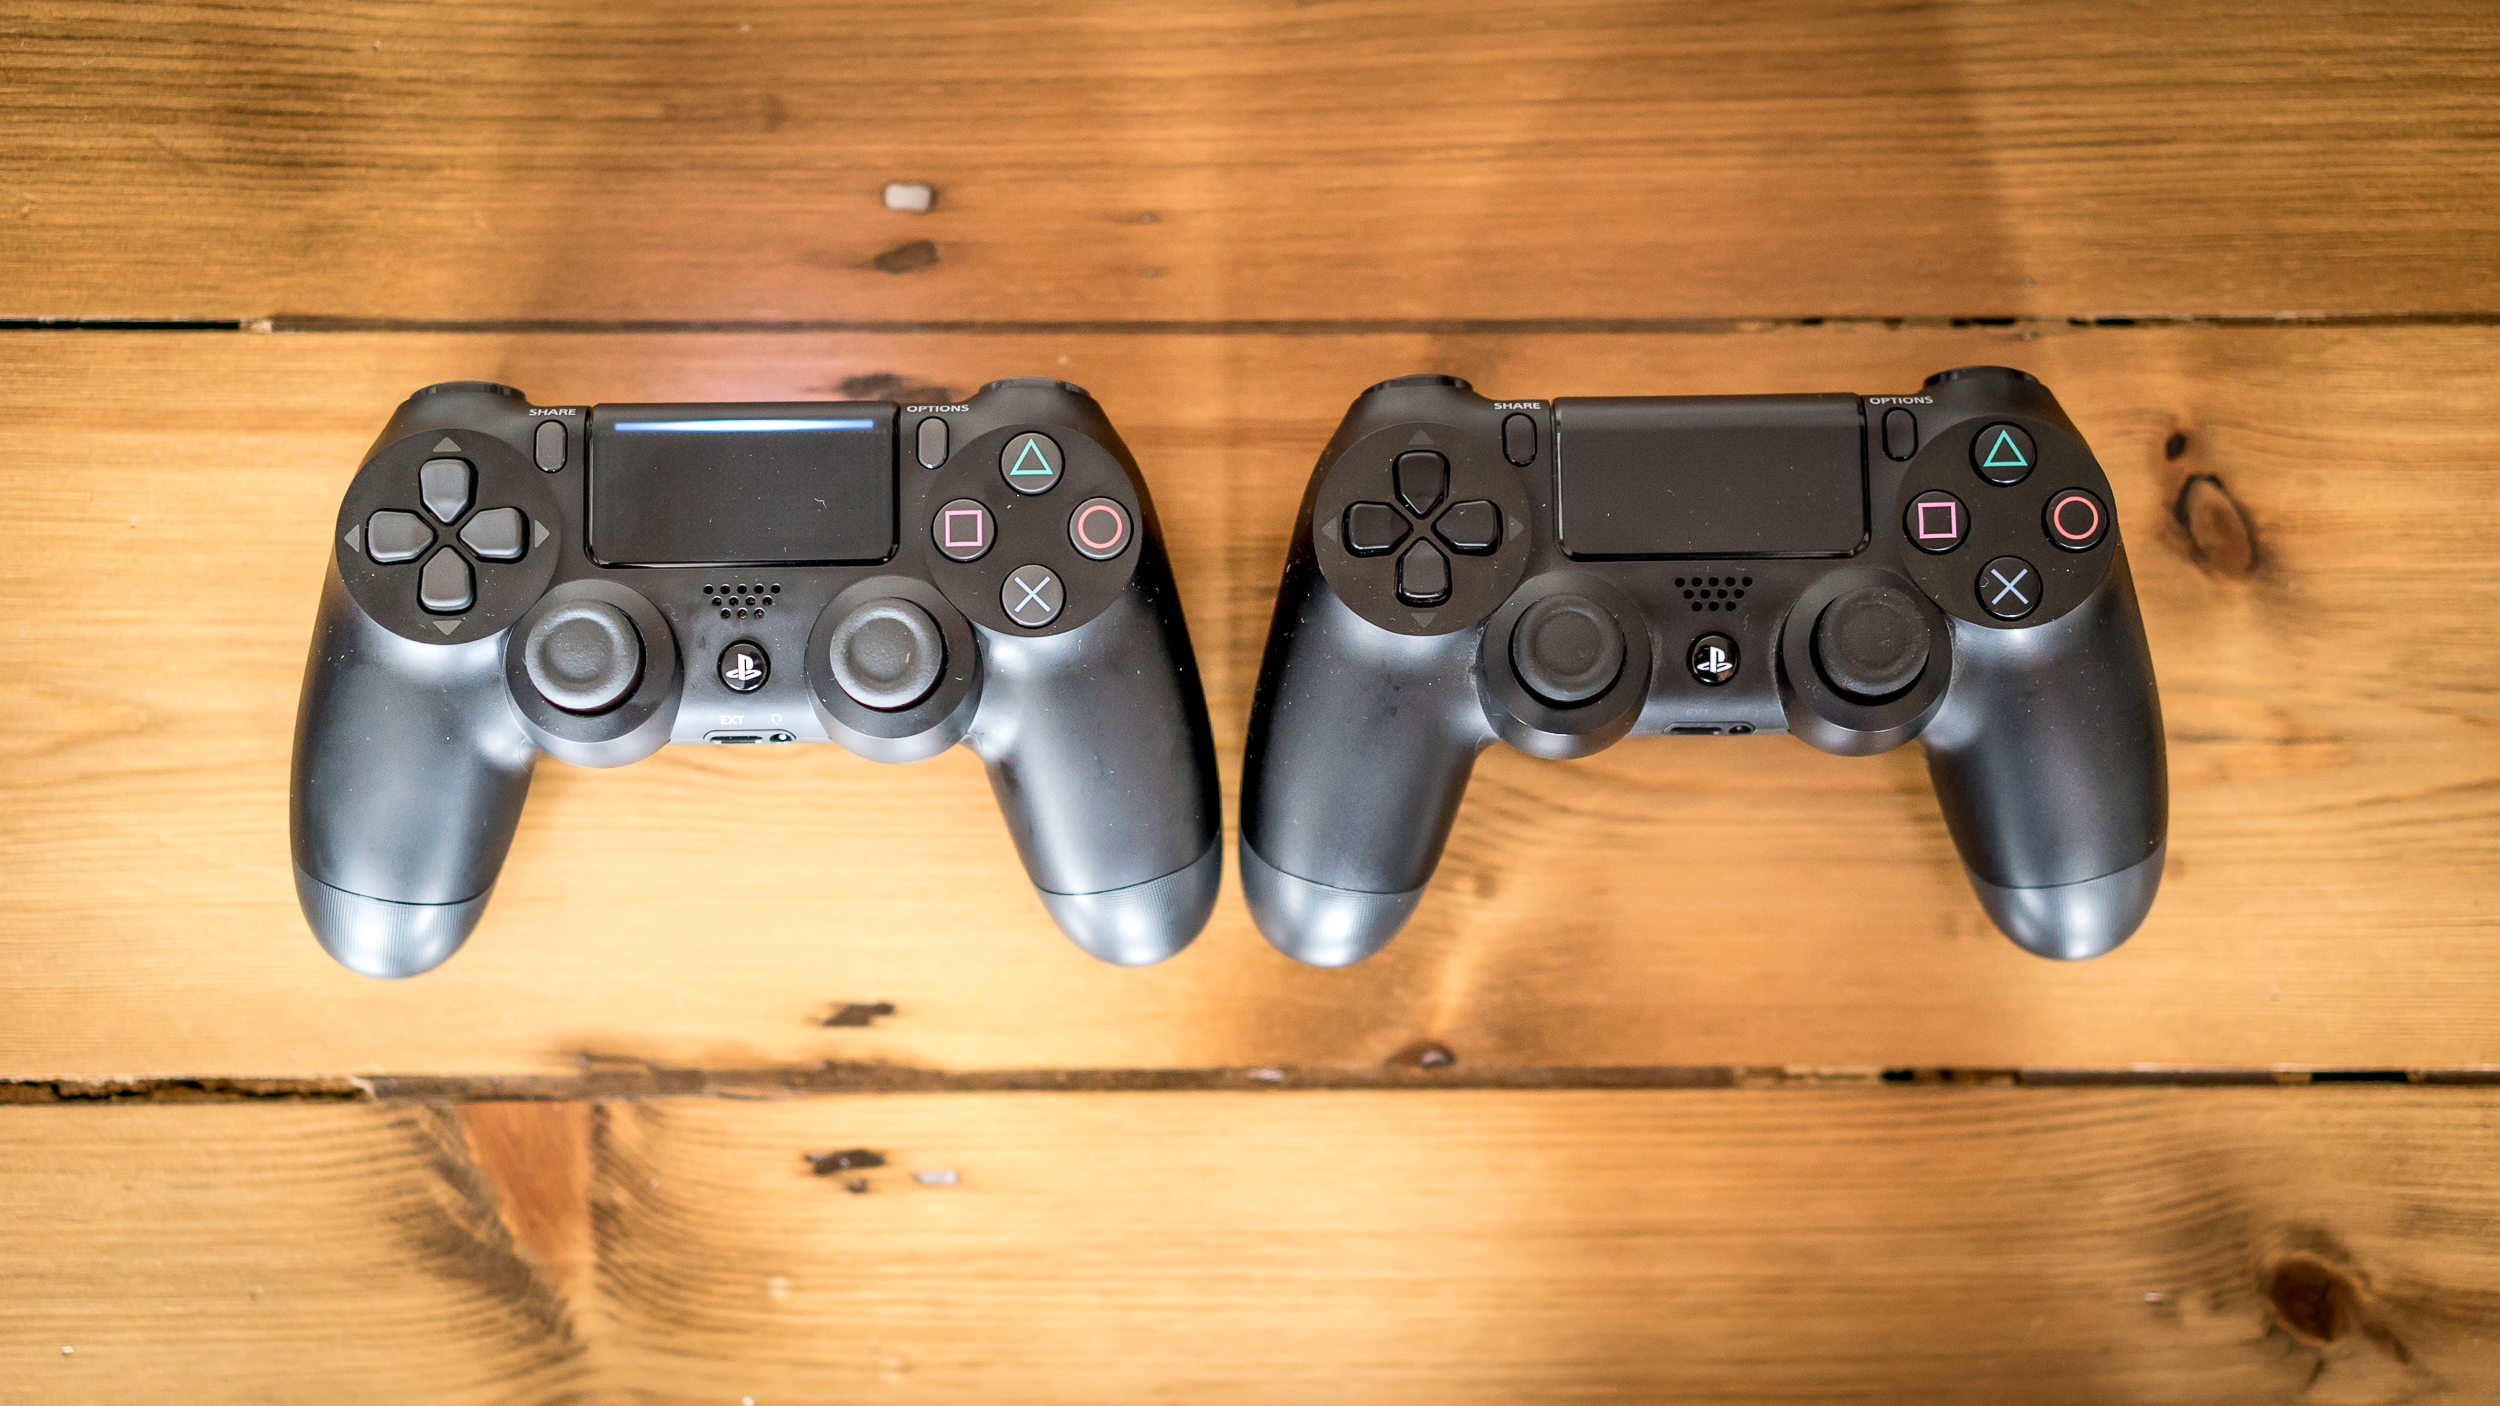 Ps4 Slim Review A Smaller Sexier Console With Few Compromises